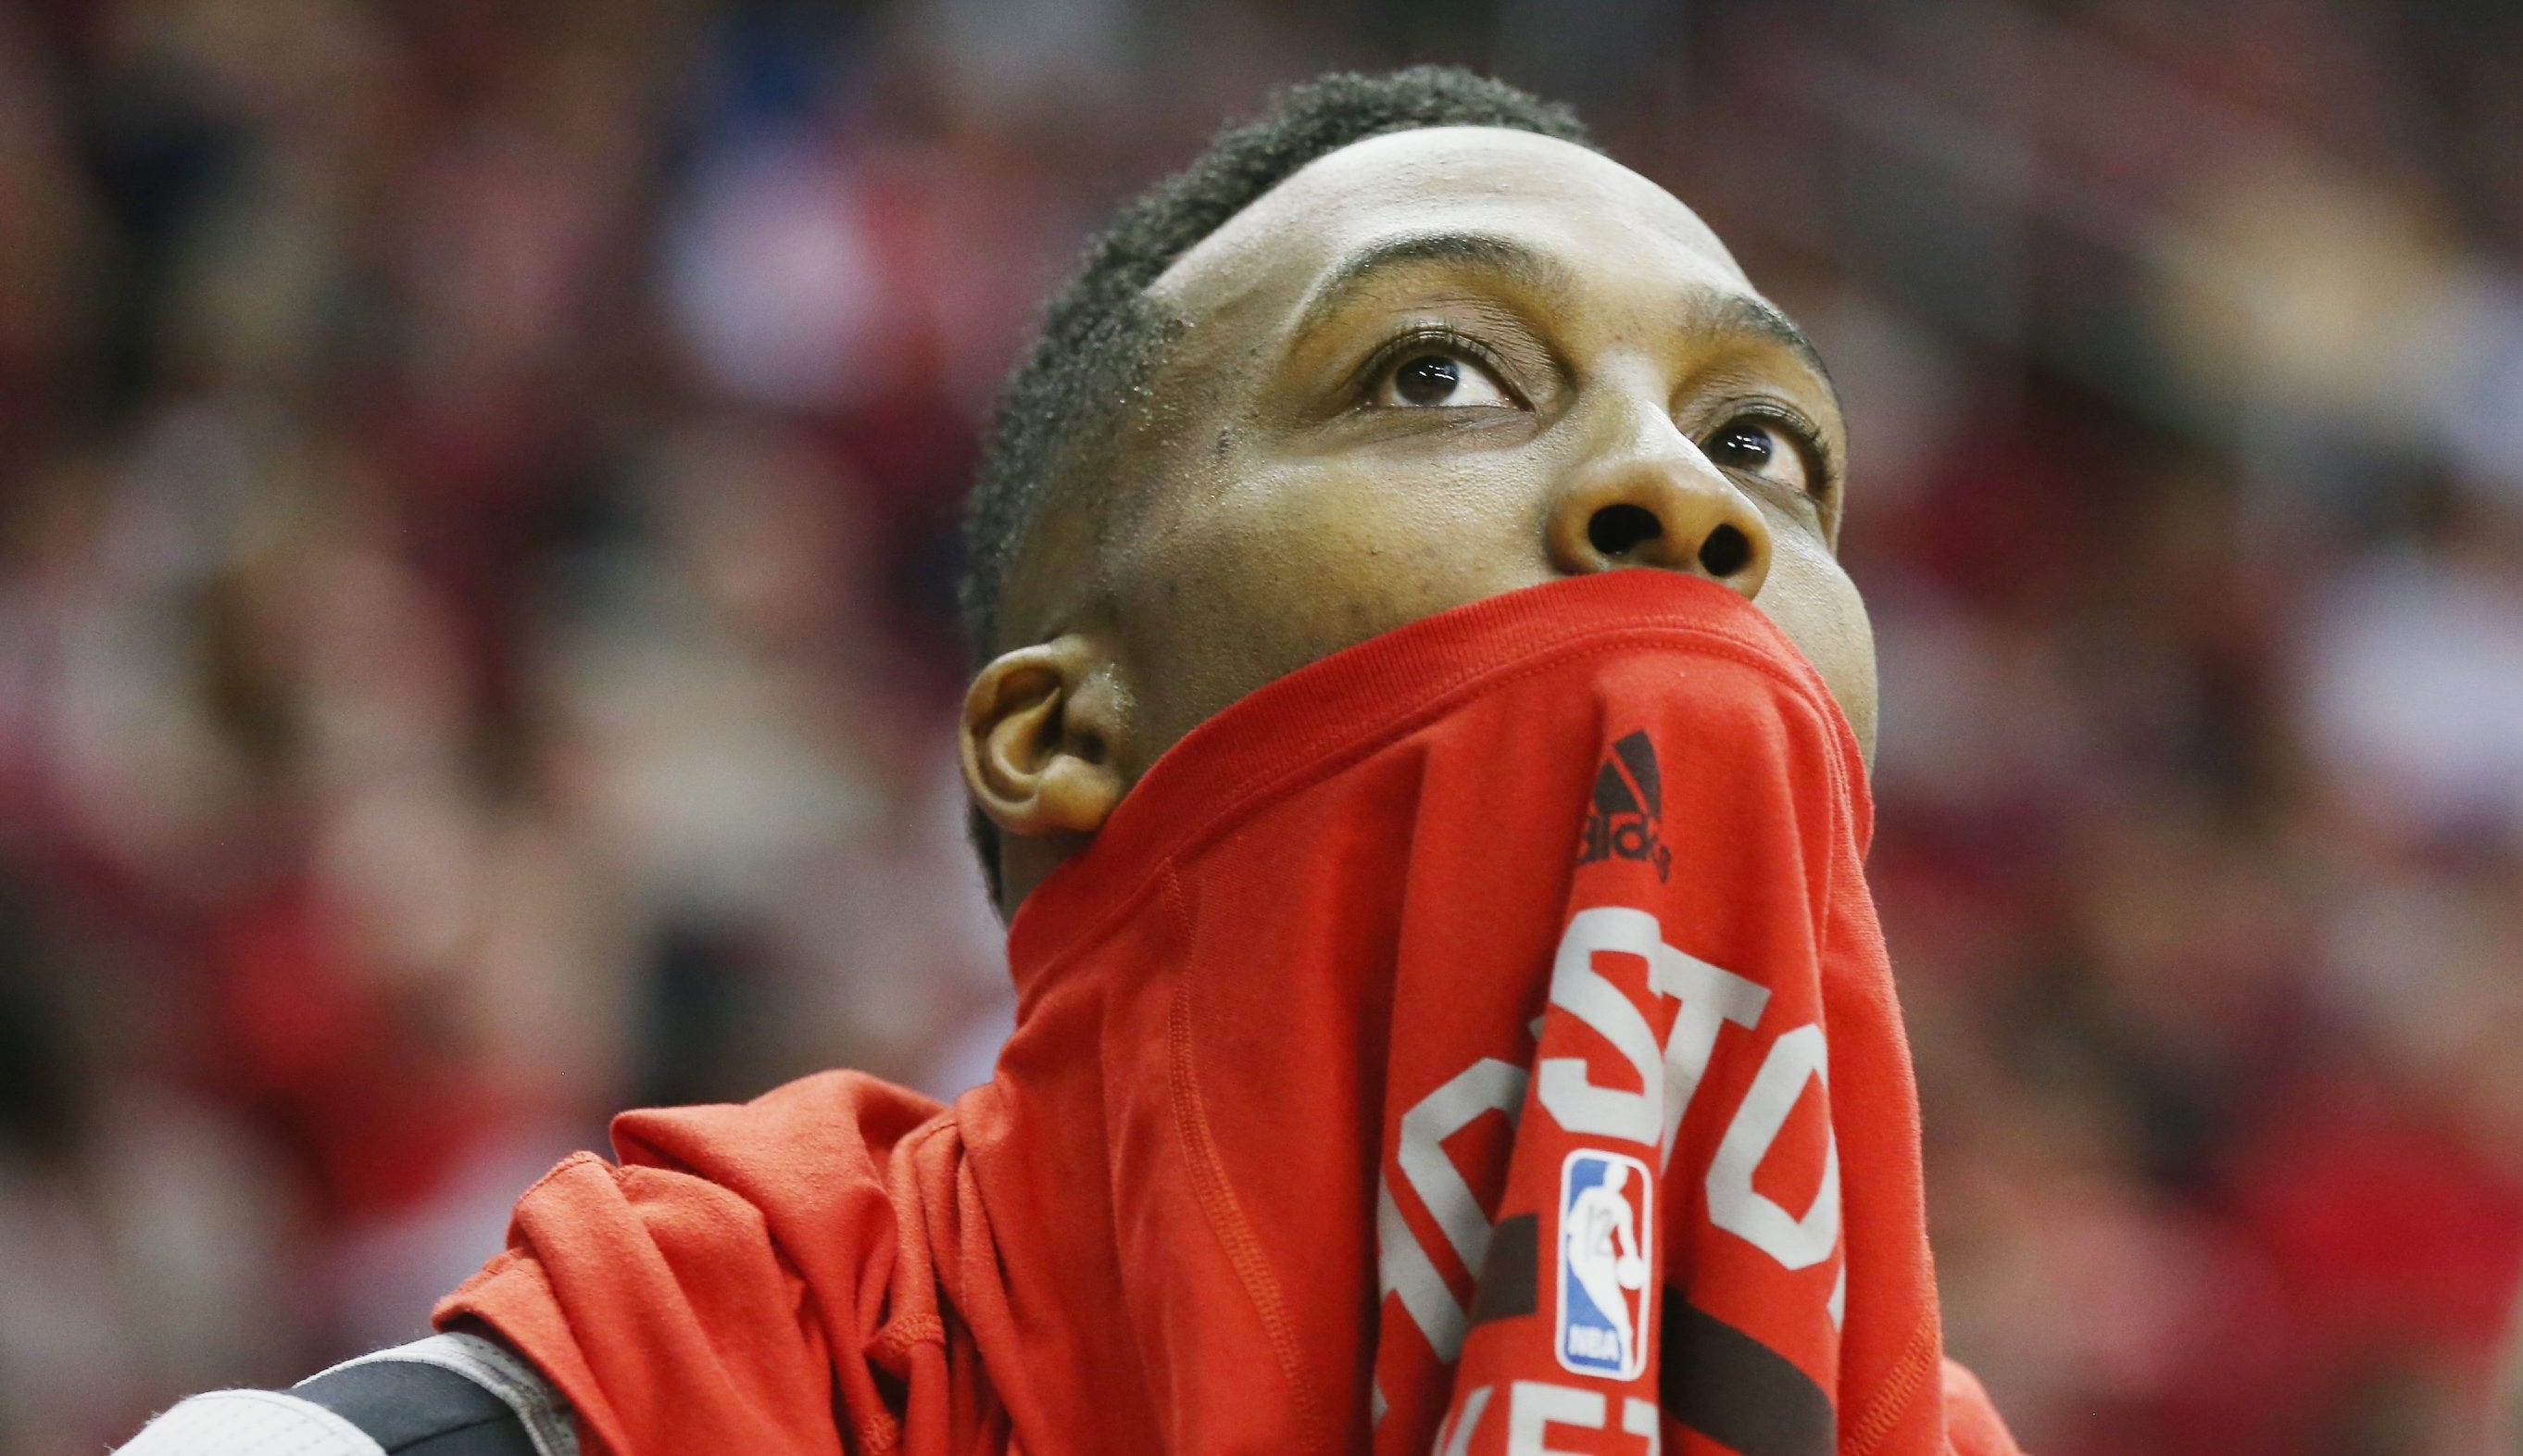 Dwight Howard is shooting just 40 percent from the free throw line in the playoffs.